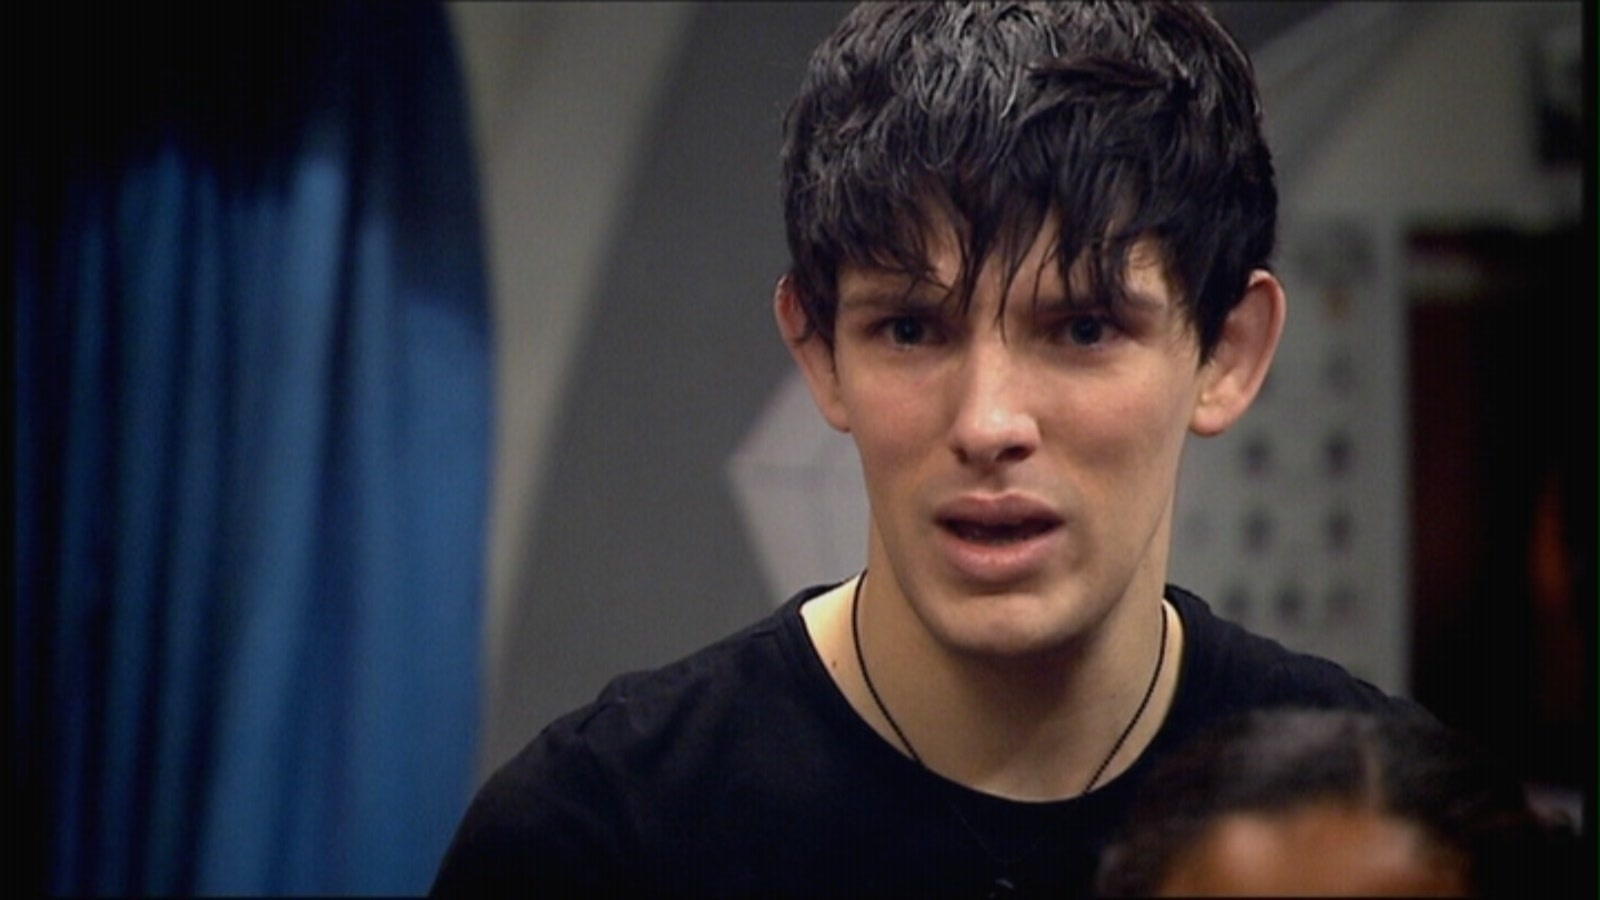 Doctor Who Colin Morgan Image 9919925 Fanpop